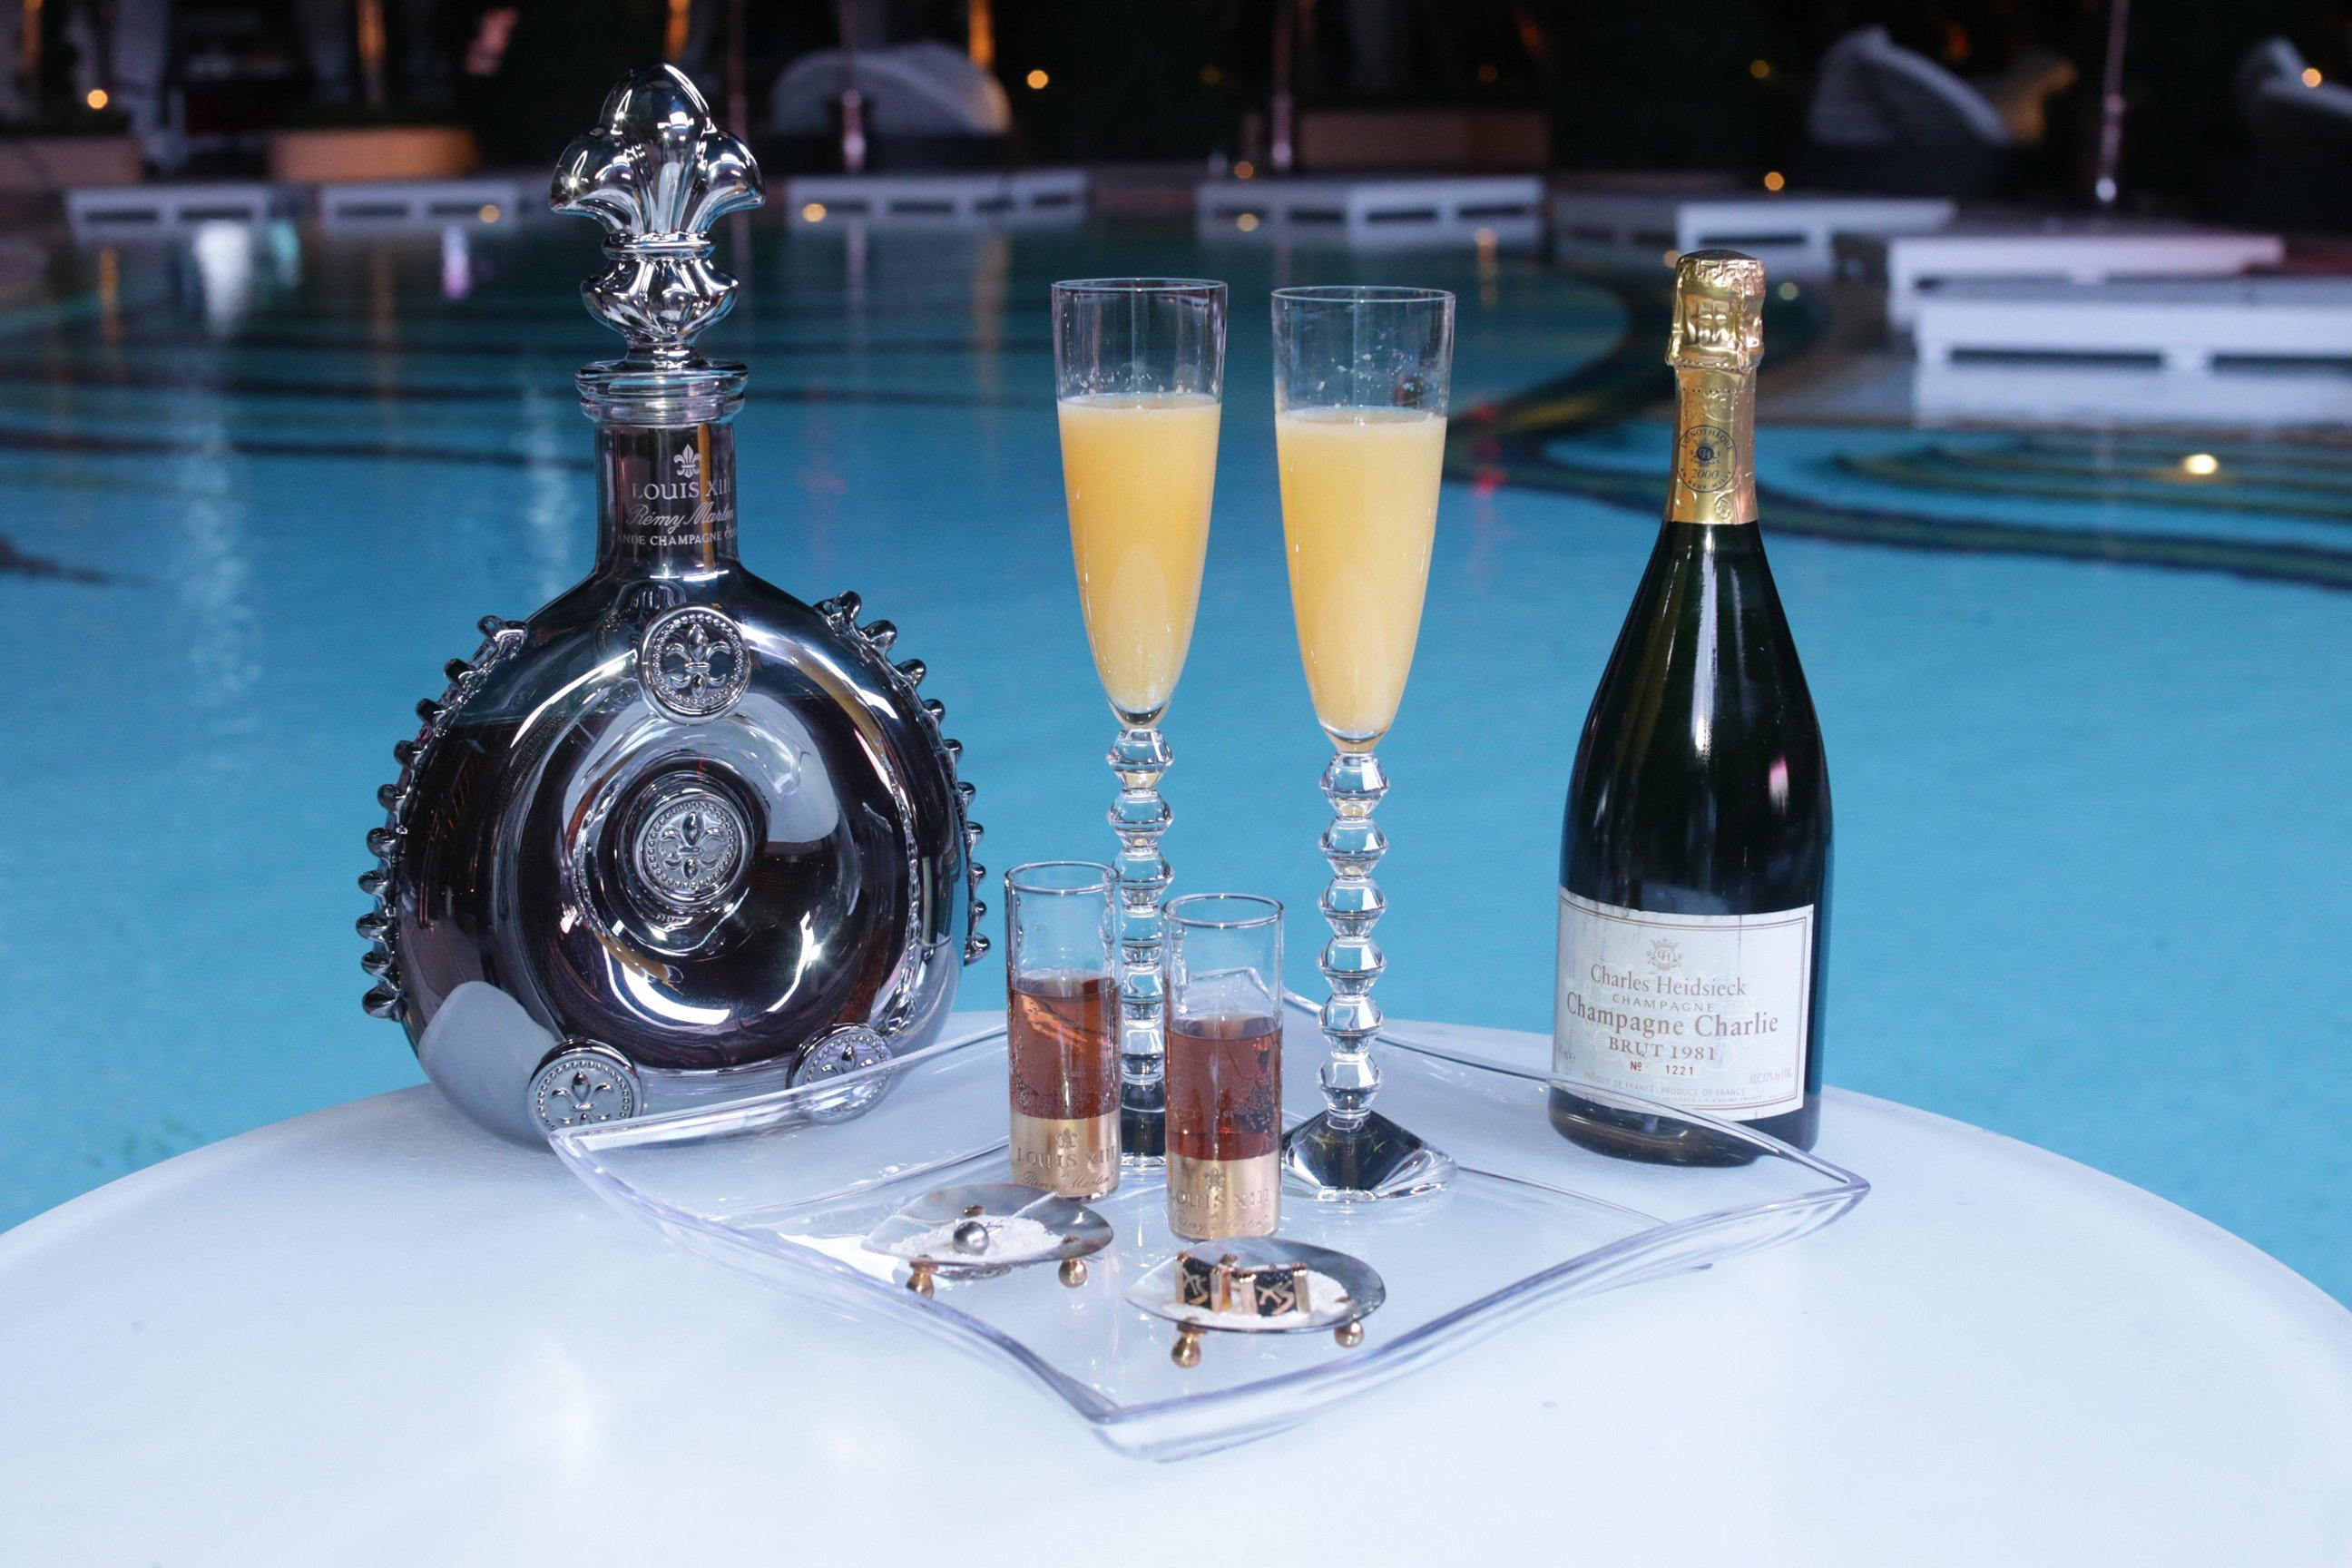 10 Of The Most Expensive Cocktails In The World That'll Burn A Hole In Your Wallet Your Liver